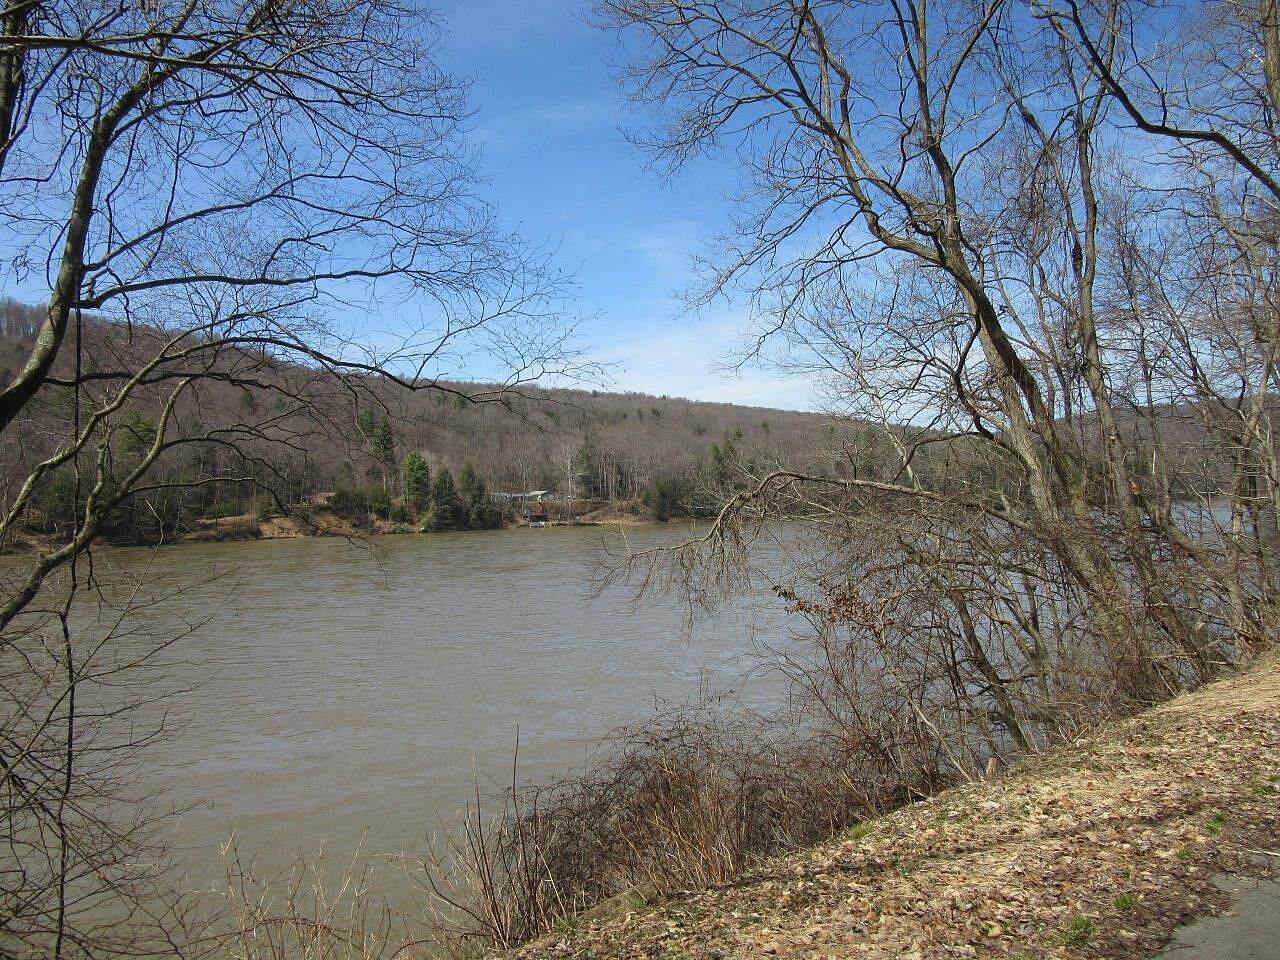 Allegheny River Trail Allegheny River Allegheny River - April 2015